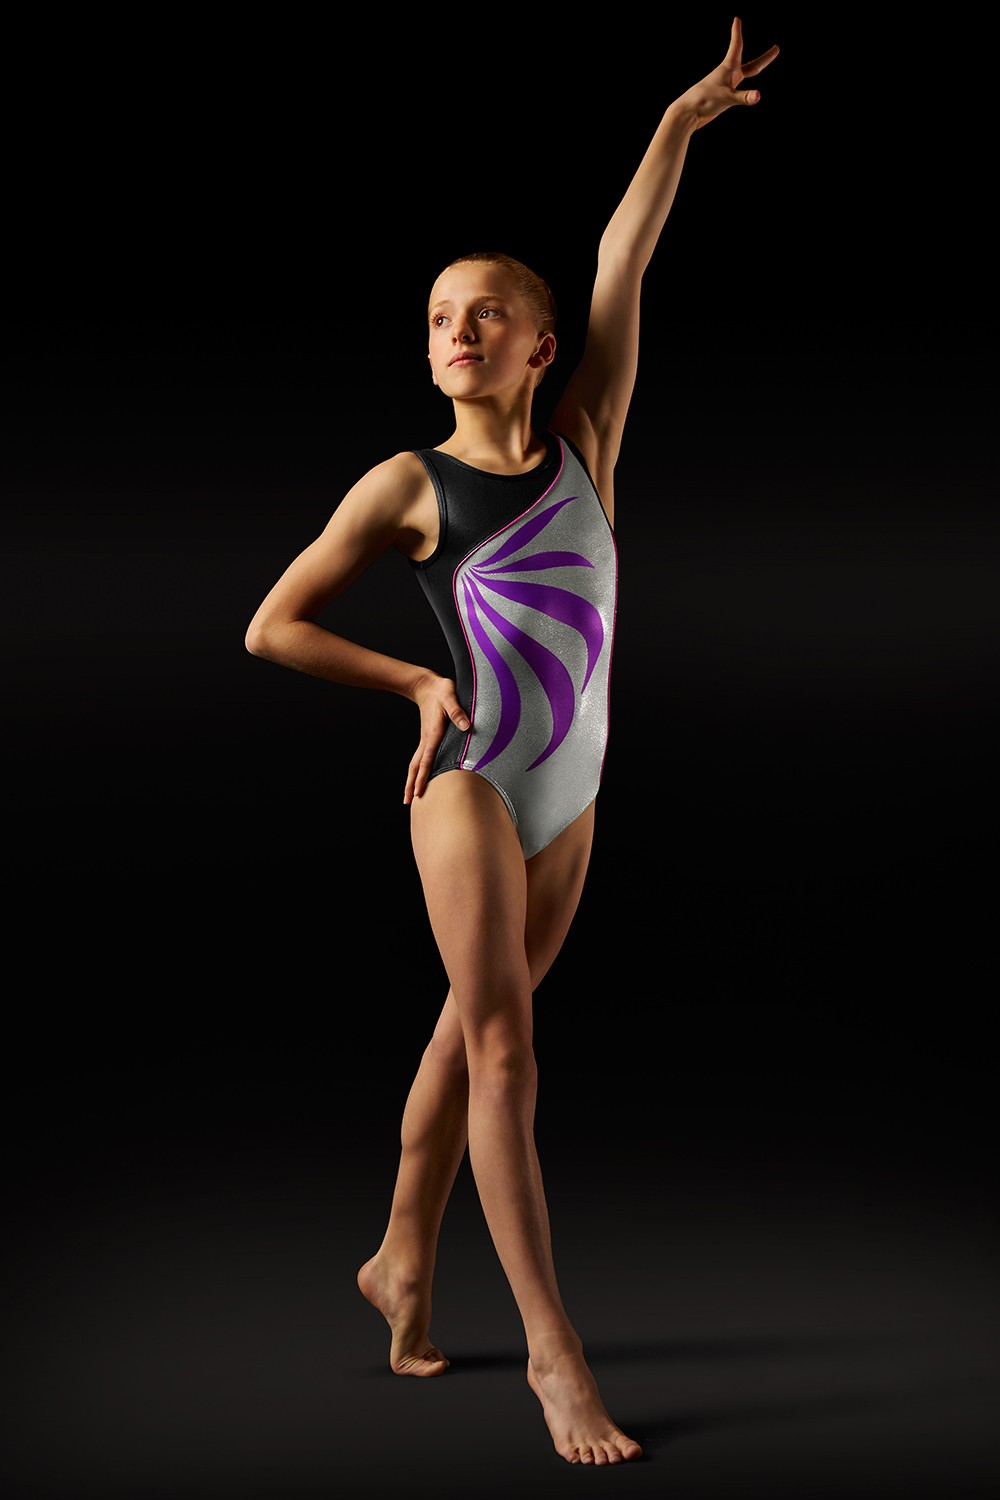 Body Con Spalline Larghe E Motivo A Fiamma Girl's Gymnastics Leotards